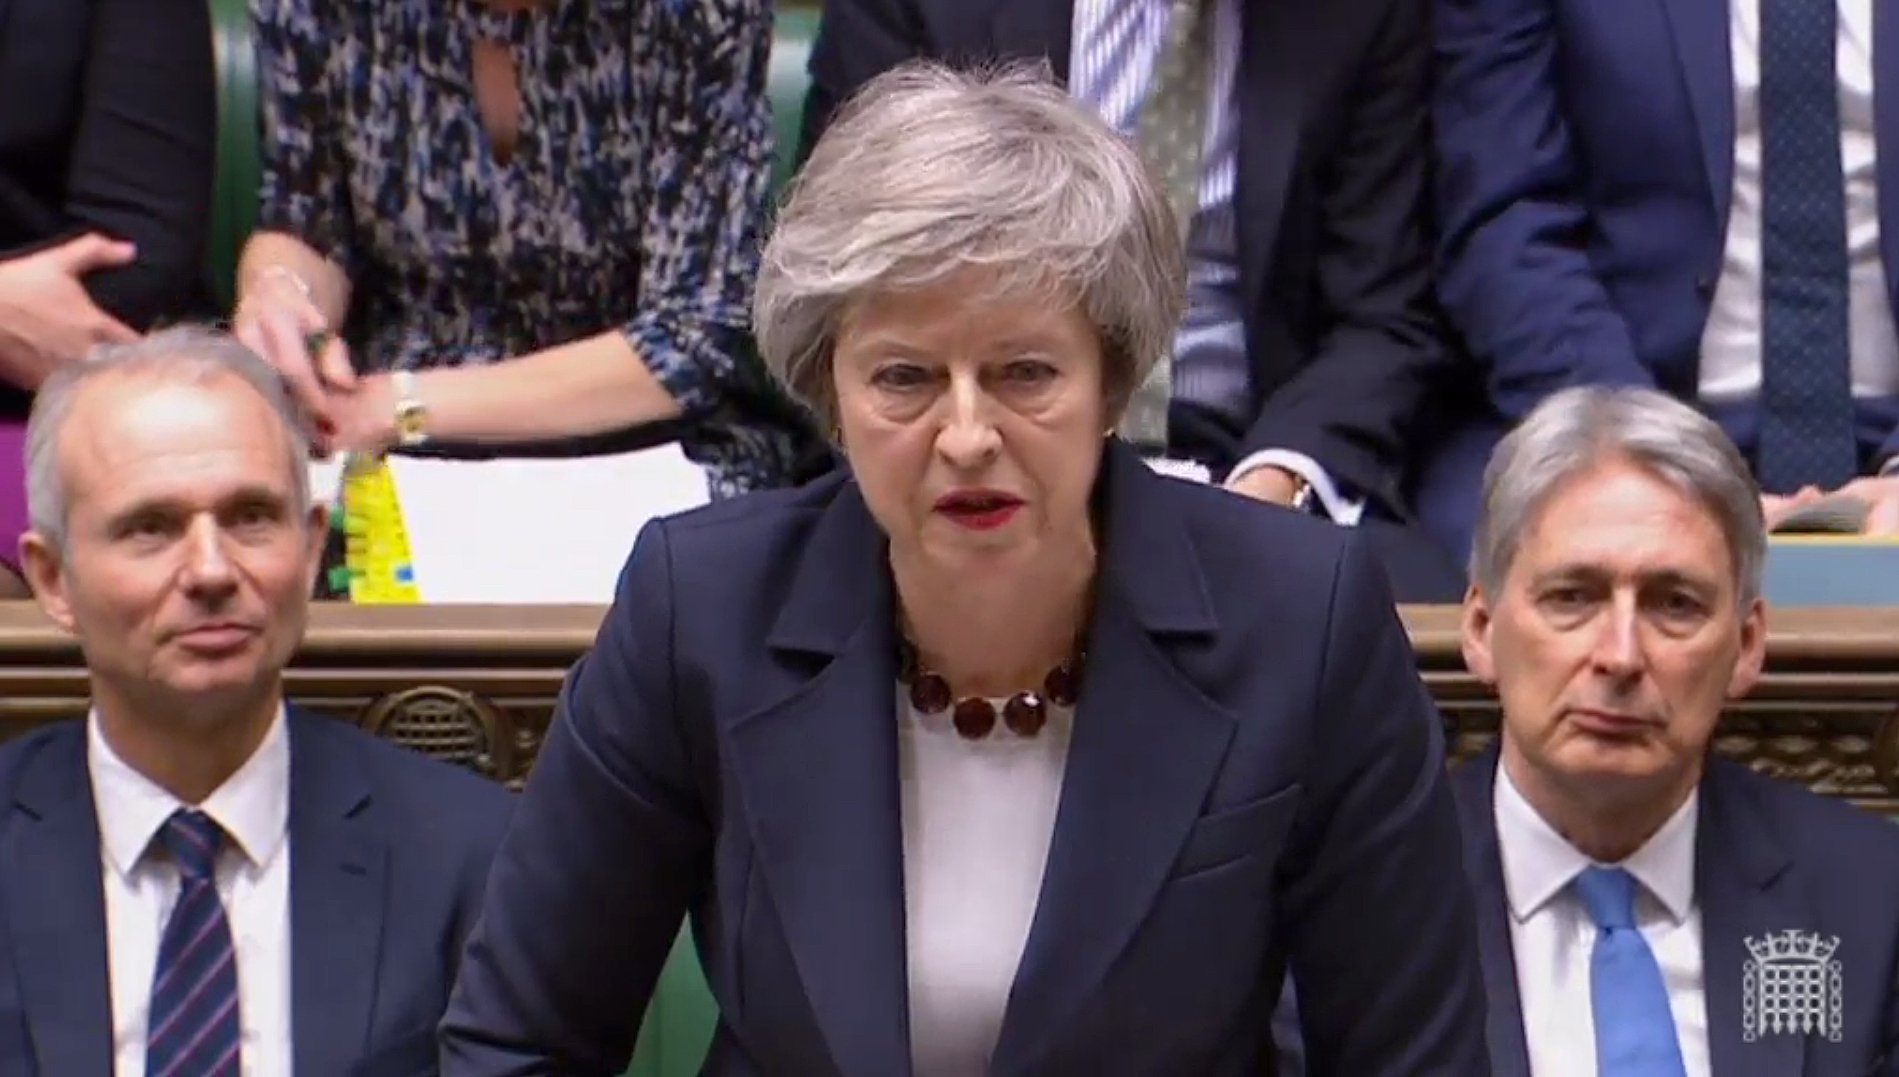 """A video grab from footage broadcast by the UK Parliament's Parliamentary Recording Unit (PRU) Britain's Prime Minister Theresa May as she speaks during the weekly Prime Minister's Questions (PMQs) in the House of Commons in London on January 9, 2019. - British MPs on Wednesday begin five days of debate ahead of a historic delayed vote on Prime Minister Theresa May's Brexit deal, a day after giving her a stinging blow aimed at preventing the country from crashing out of the EU with no agreement. (Photo by HO / PRU / AFP) / RESTRICTED TO EDITORIAL USE - MANDATORY CREDIT """" AFP PHOTO / PRU """" - NO USE FOR ENTERTAINMENT, SATIRICAL, MARKETING OR ADVERTISING CAMPAIGNSHO/AFP/Getty Images"""